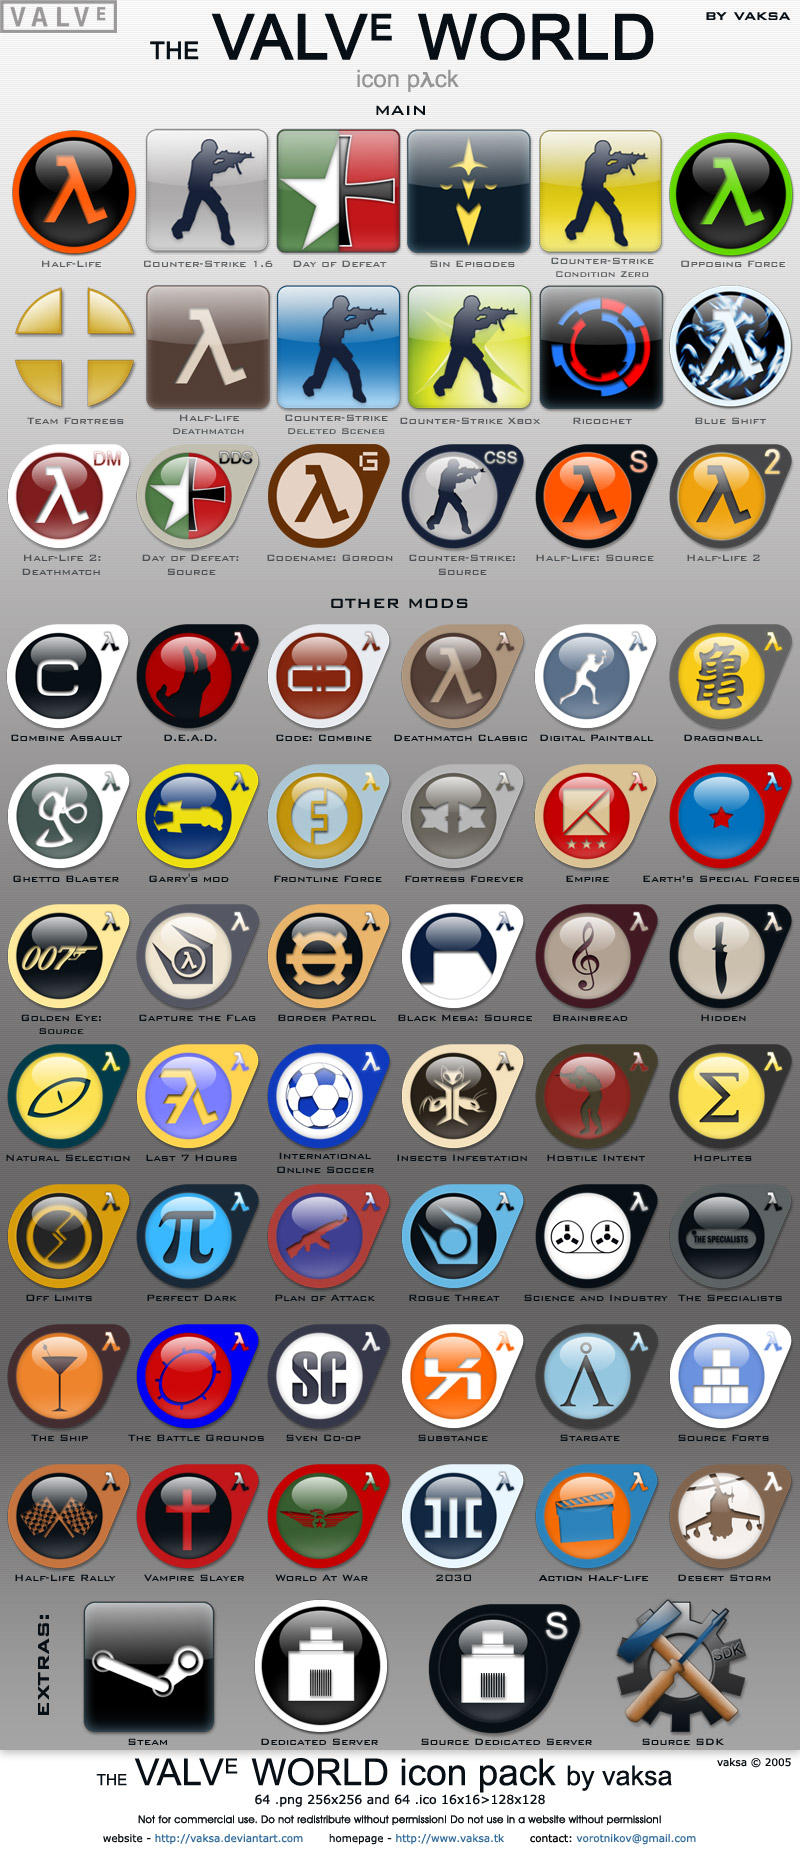 [Obrazek: the_Valve_World_icon_pack_by_vaksa.jpg]